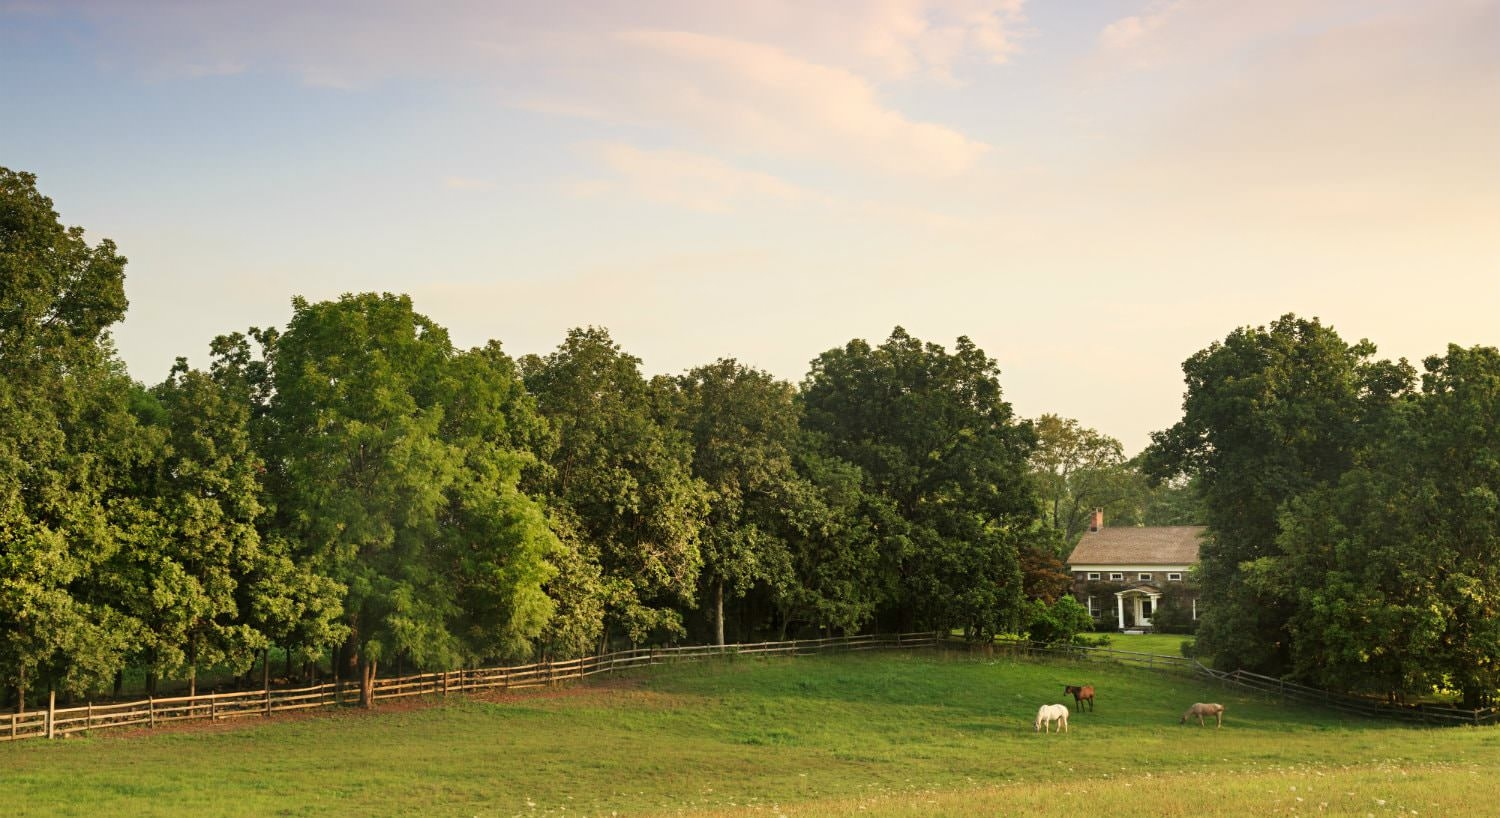 Large grassy pasture with three horses surrounded by split-rail fence and trees and view of inn in the distance